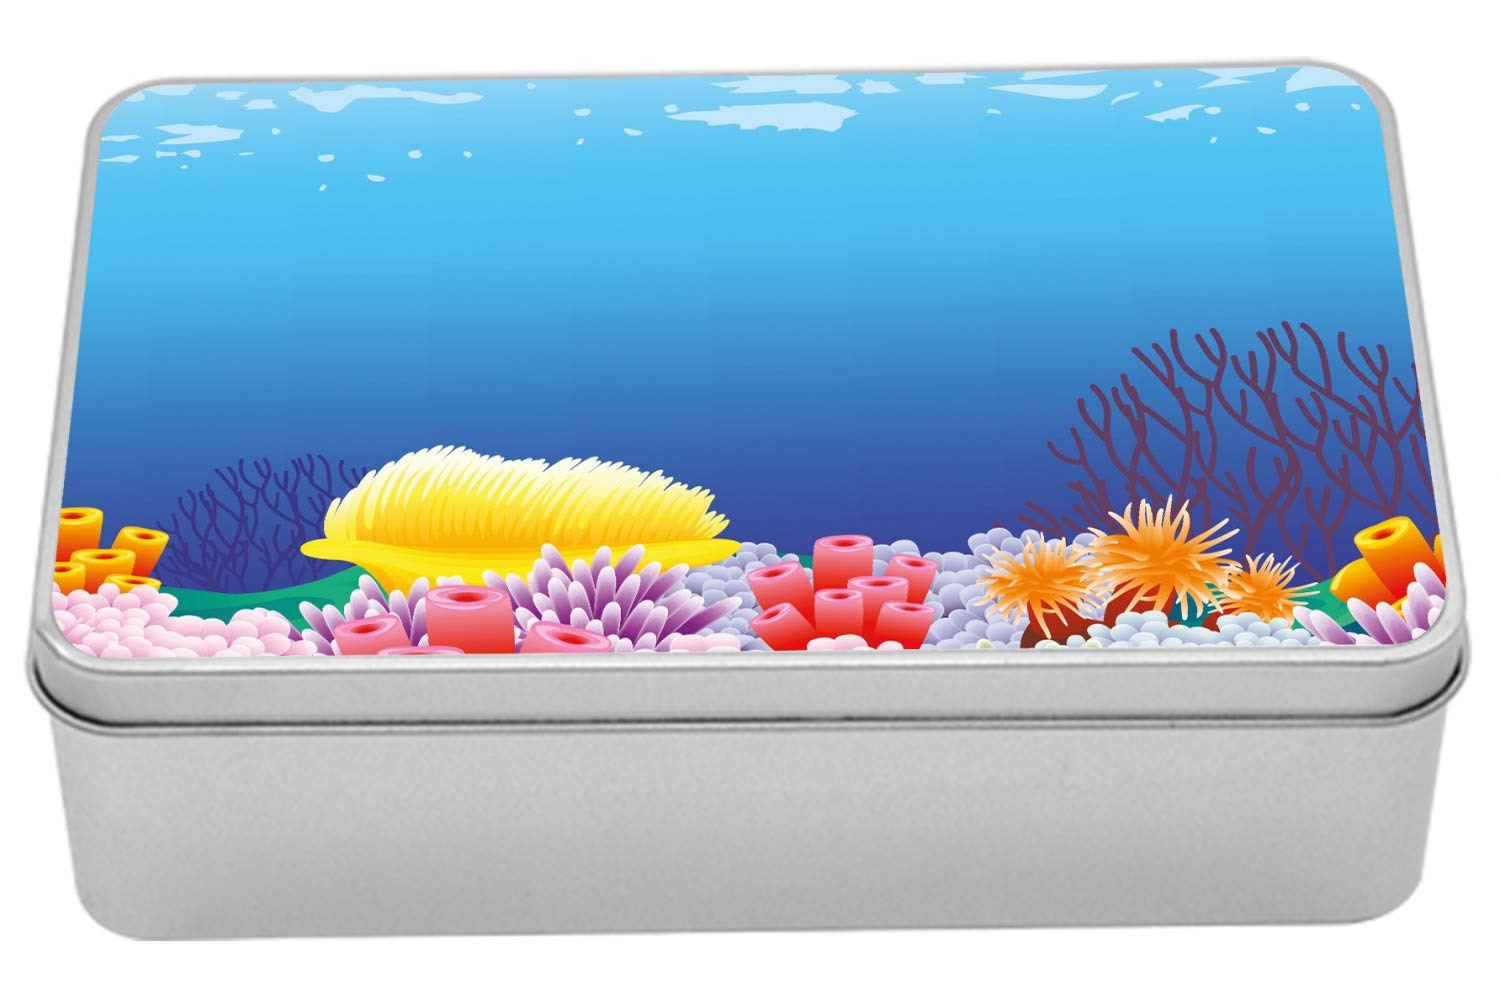 Lunarable Aquarium Tin Box, Underwater Plants Theme Botanical Composition with Variety of Corals Colorful, Portable Rectangle Metal Organizer Storage Box with Lid, 7.2'' X 4.7'' X 2.2'', Multicolor